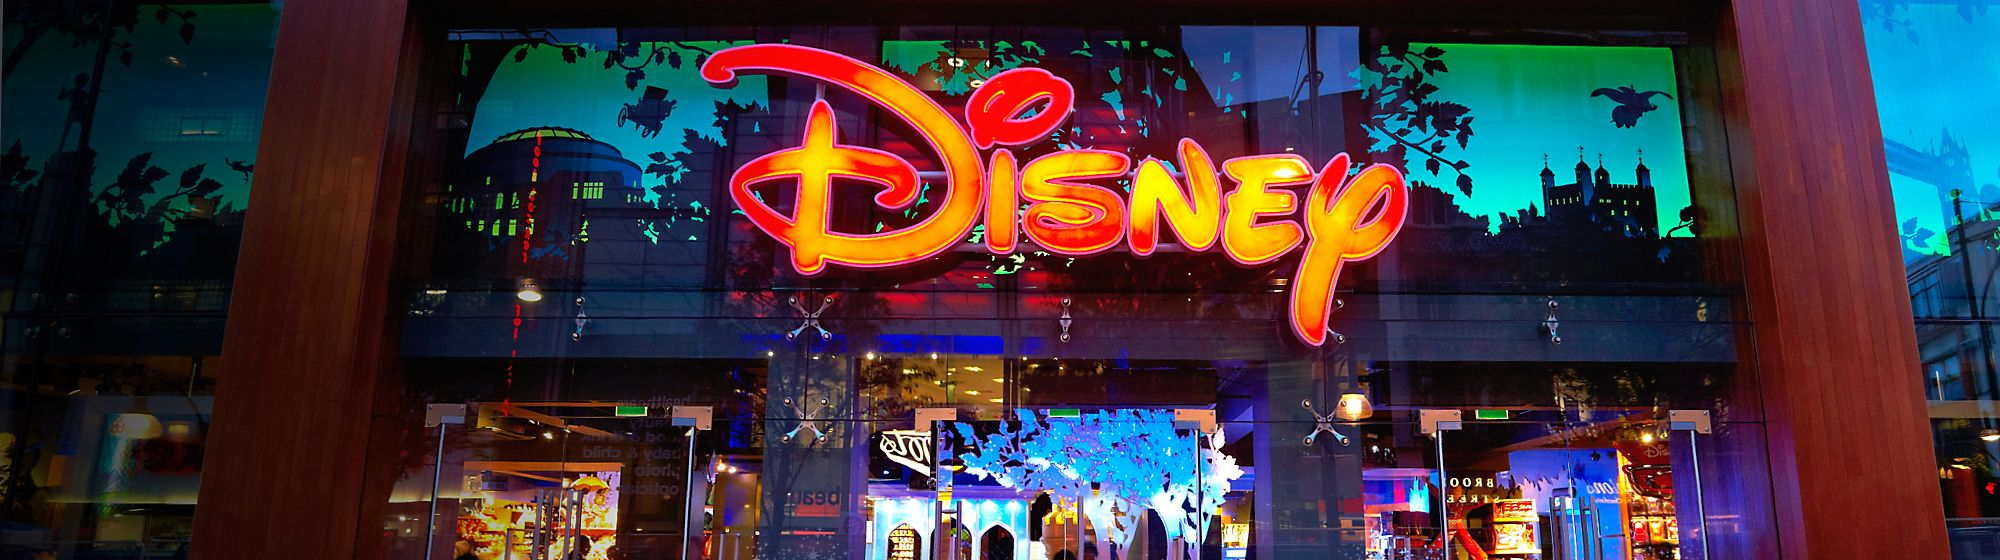 Disney Store The original home of Disney gifts, toys and clothing. Browse the brand for exclusive items featuring all your favourite Disney characters. SHOP NOW